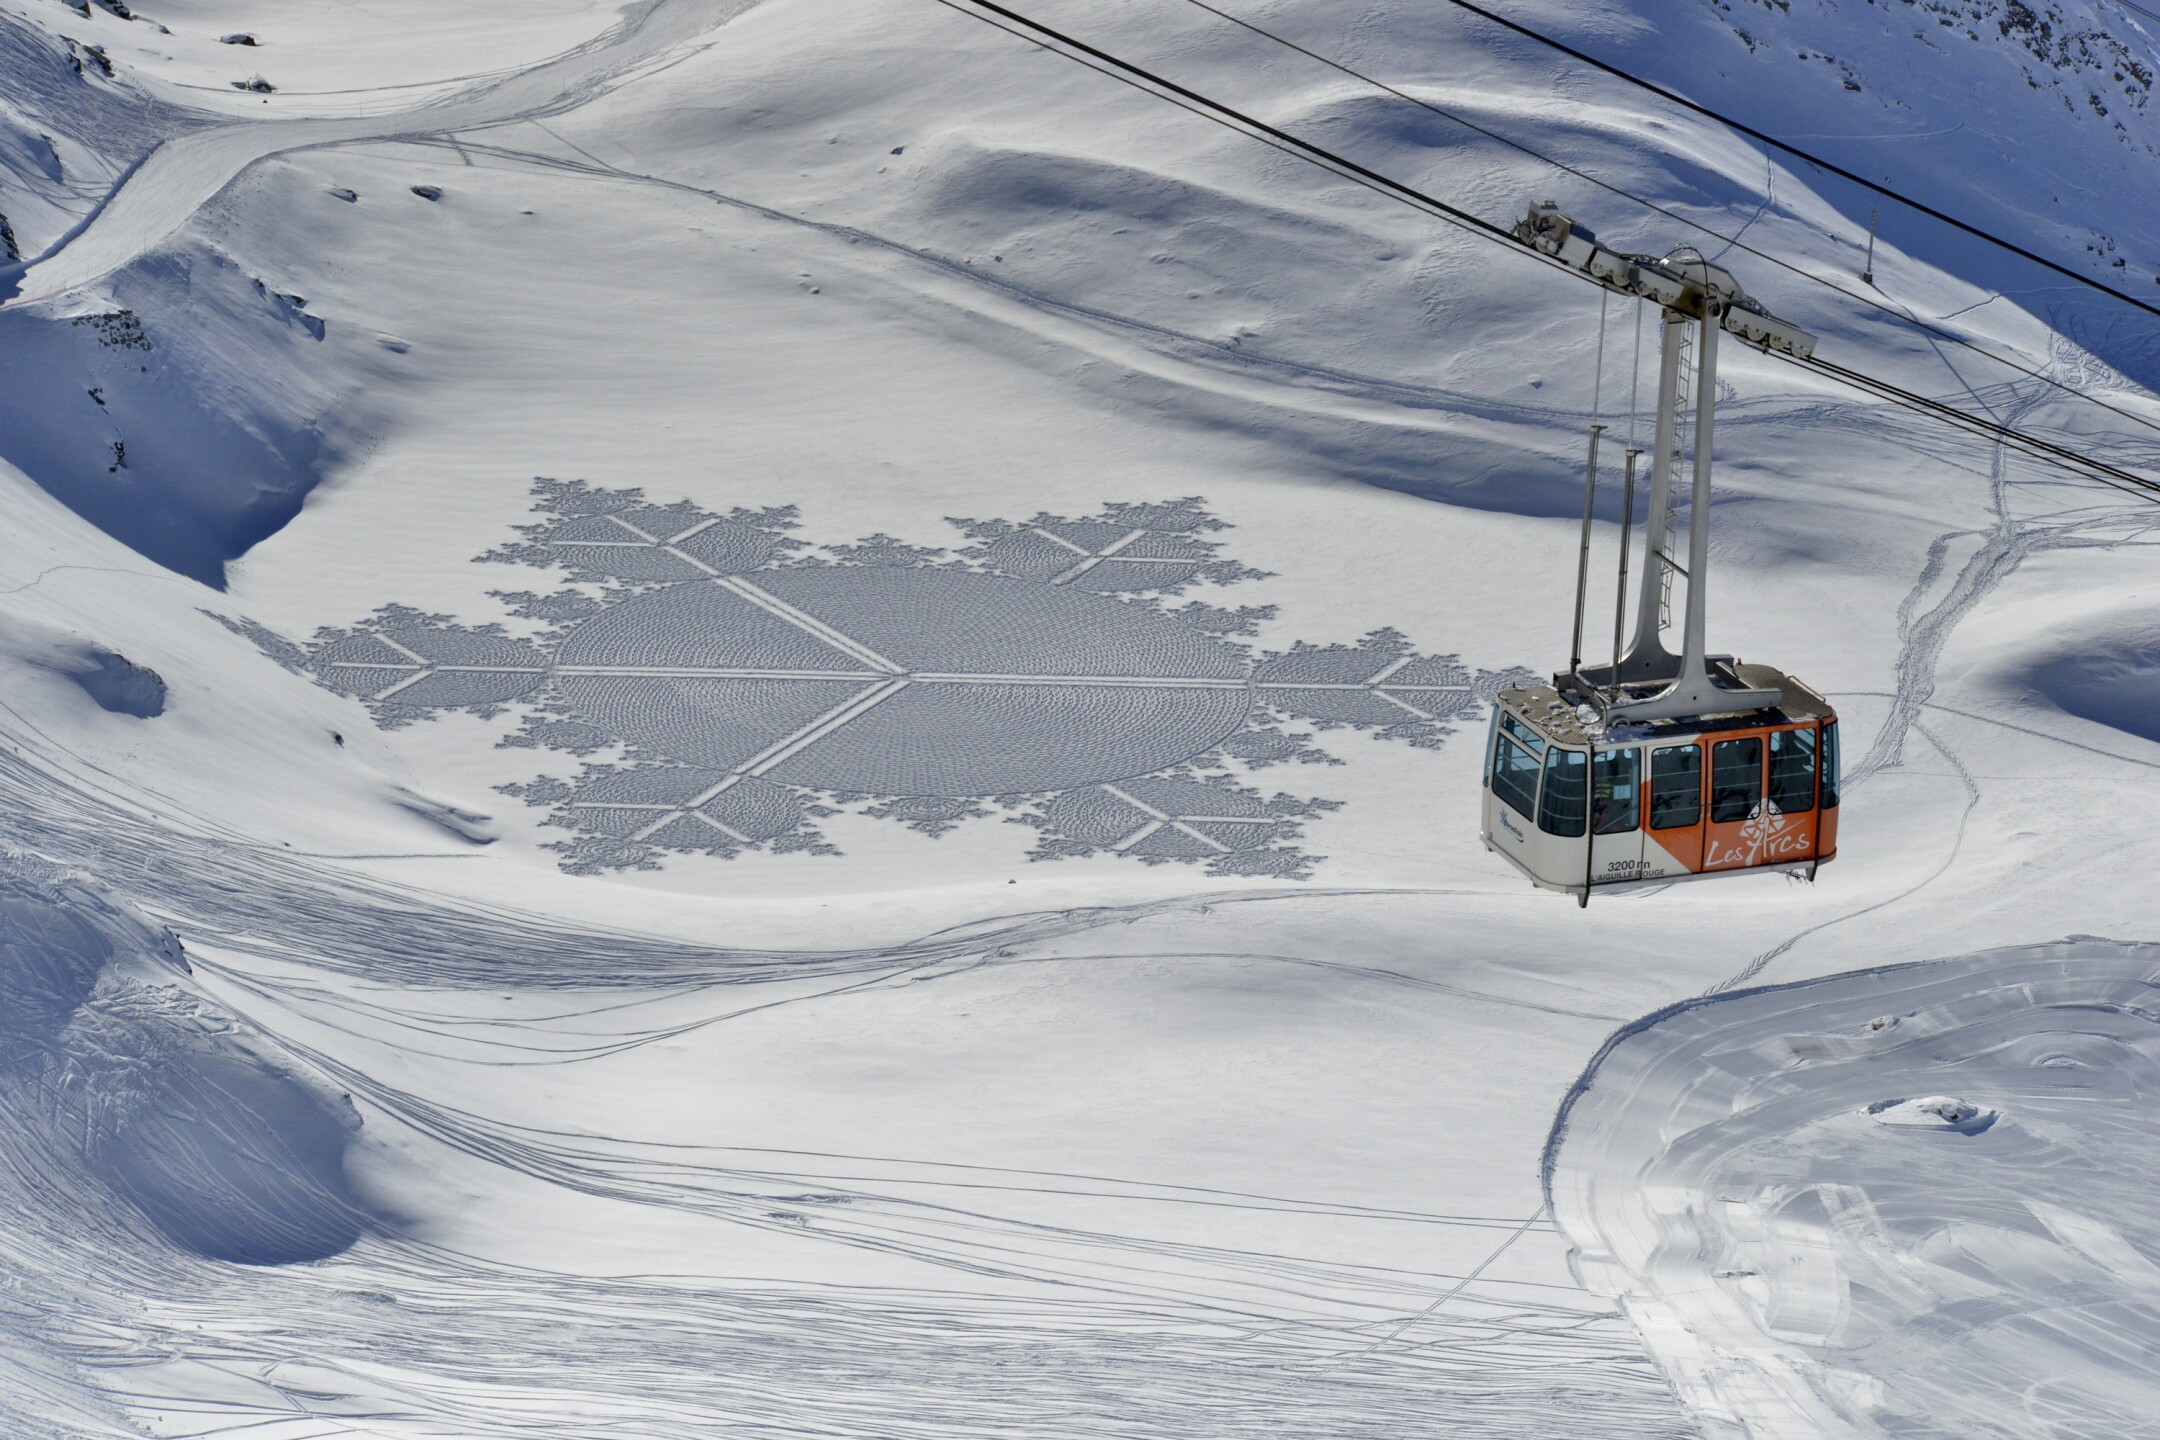 Photos: Artist uses snow as canvas for massive geometricaldesigns